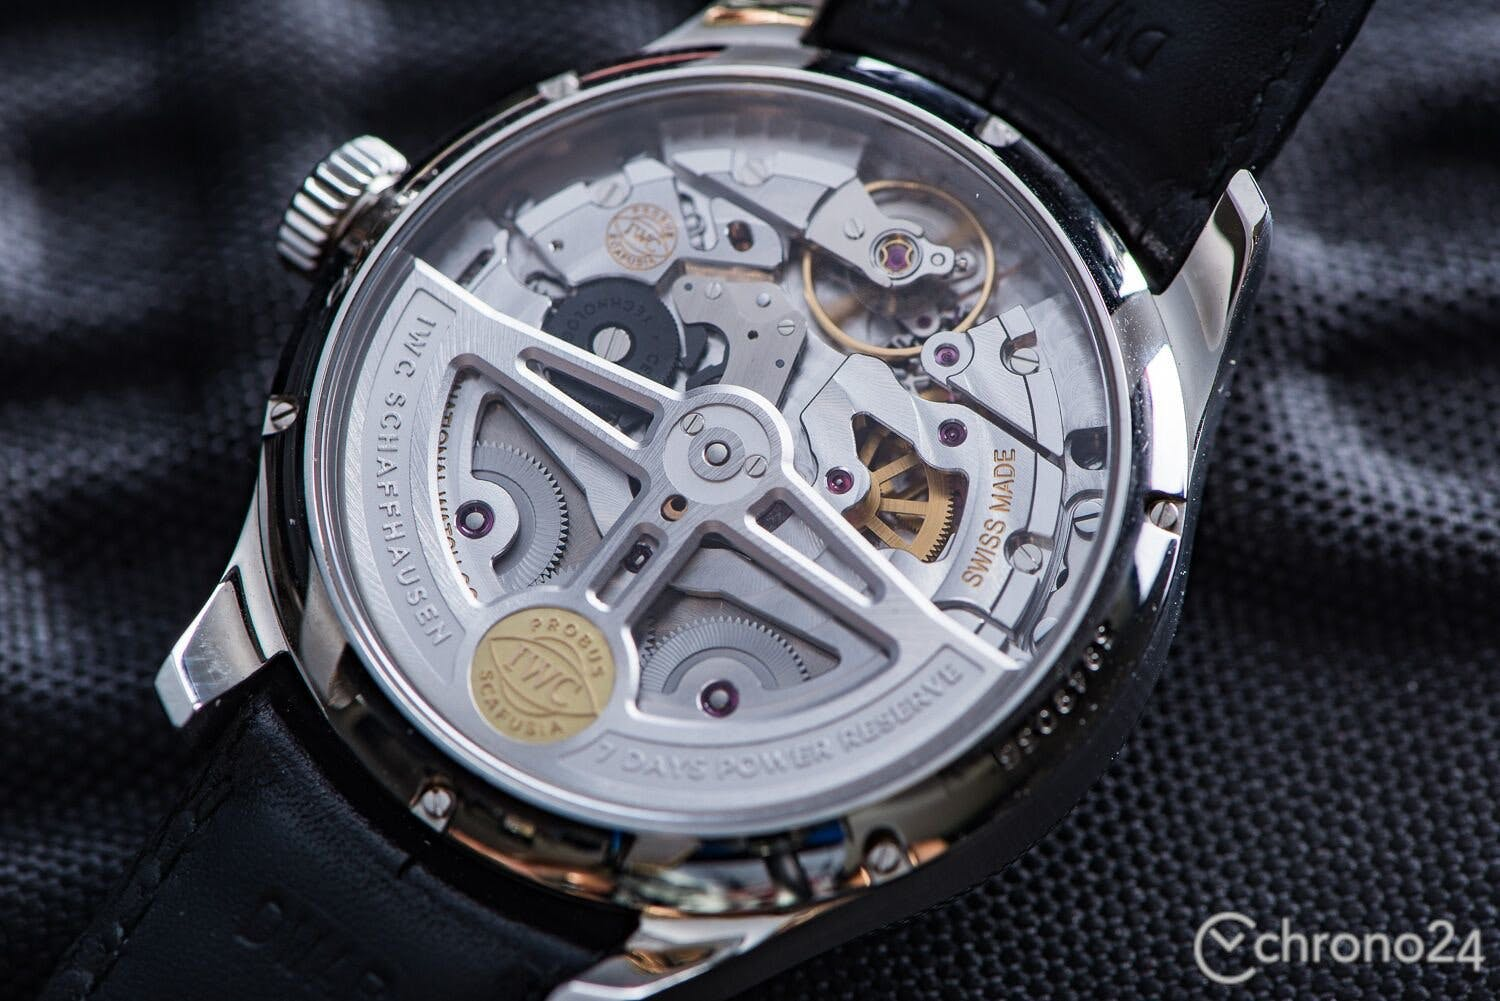 The black ceramic components of IWC's Pellaton winding system stand out from the rest of the movement.